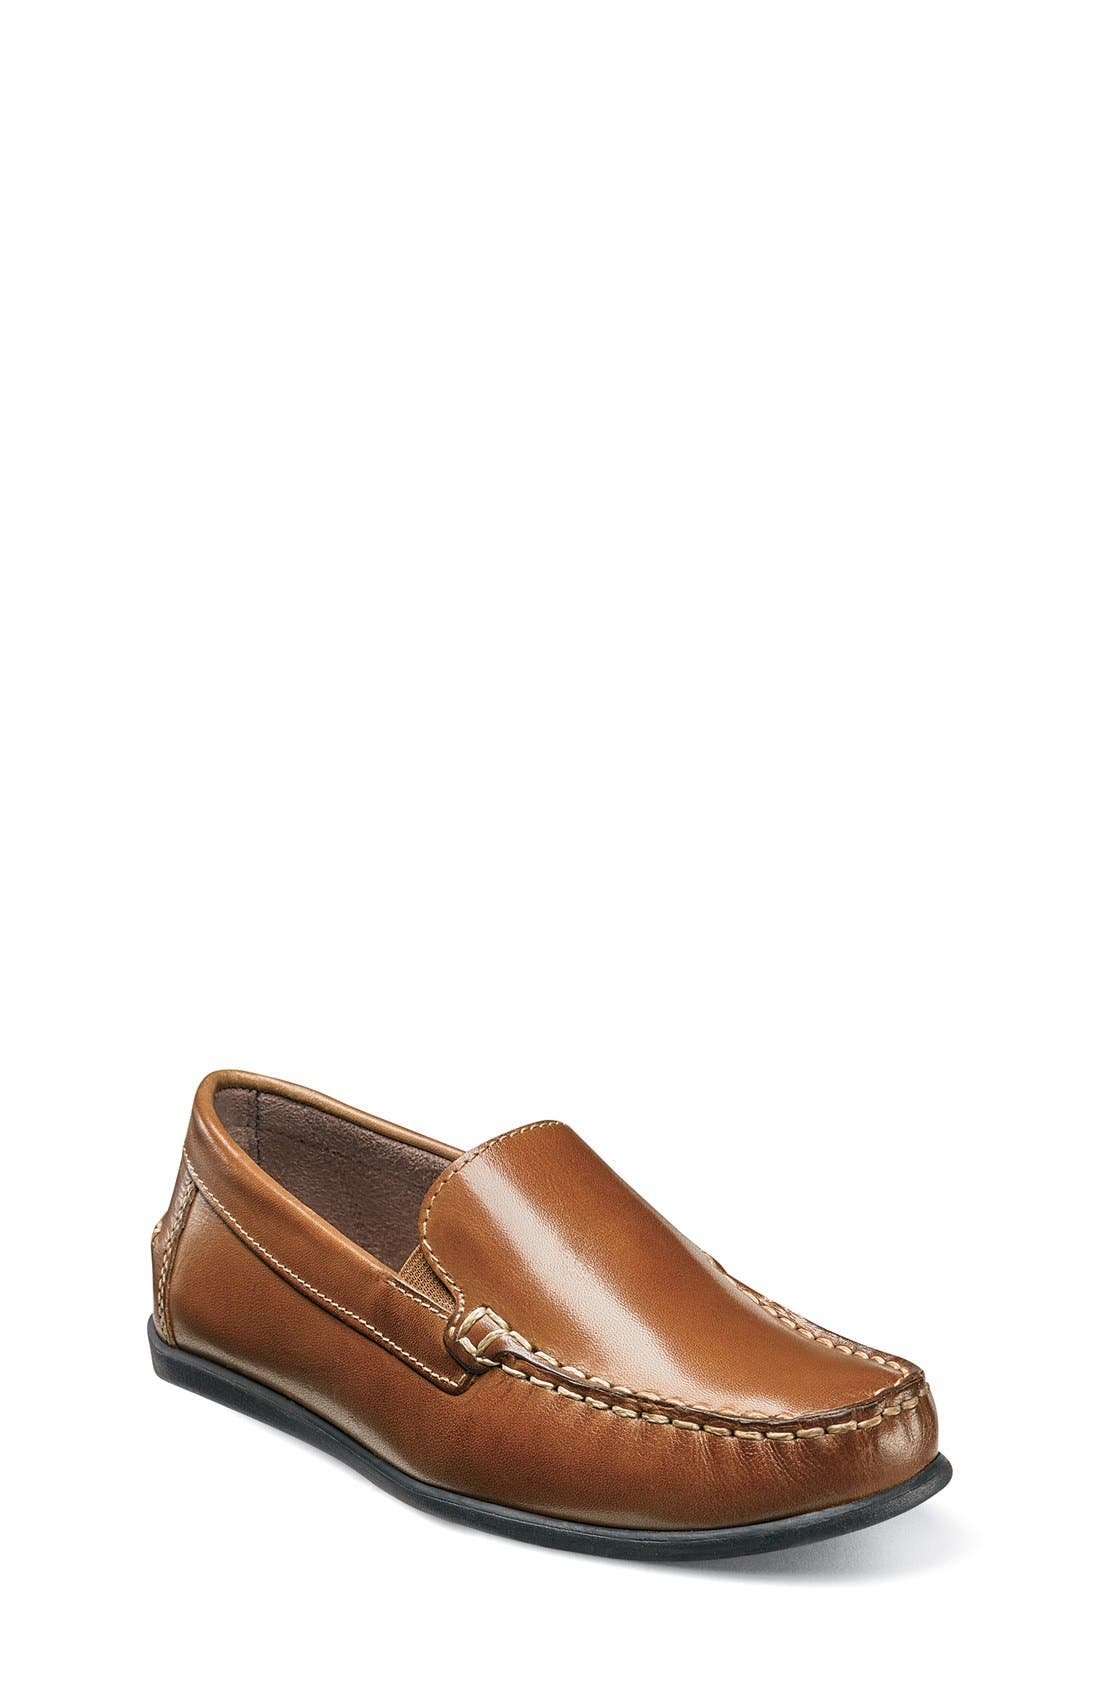 'Jasper - Venetian Jr.' Loafer,                             Main thumbnail 1, color,                             SADDLE TAN LEATHER